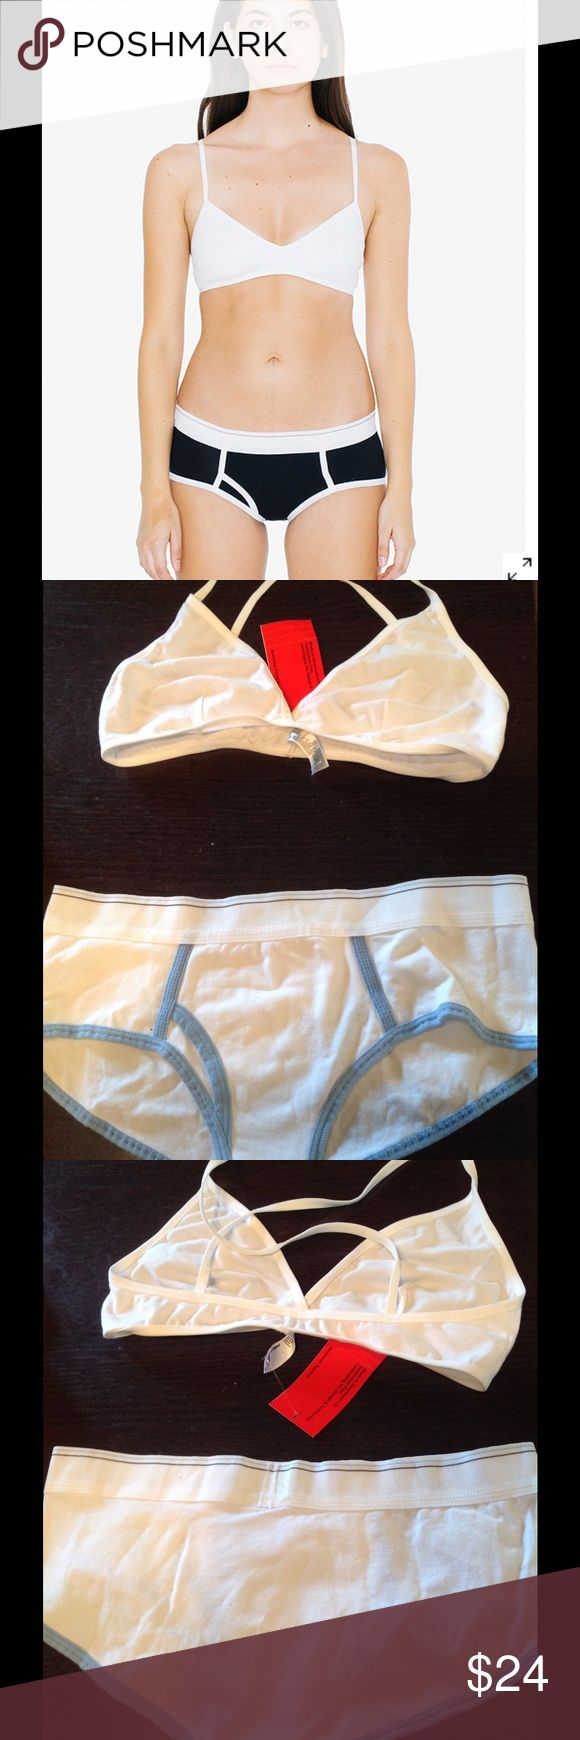 AA jersey cross back bra/ boy brief set💗💙 New tagged $27 value set is BLUE with white as shown , not black😉 American Apparel Intimates & Sleepwear Bras